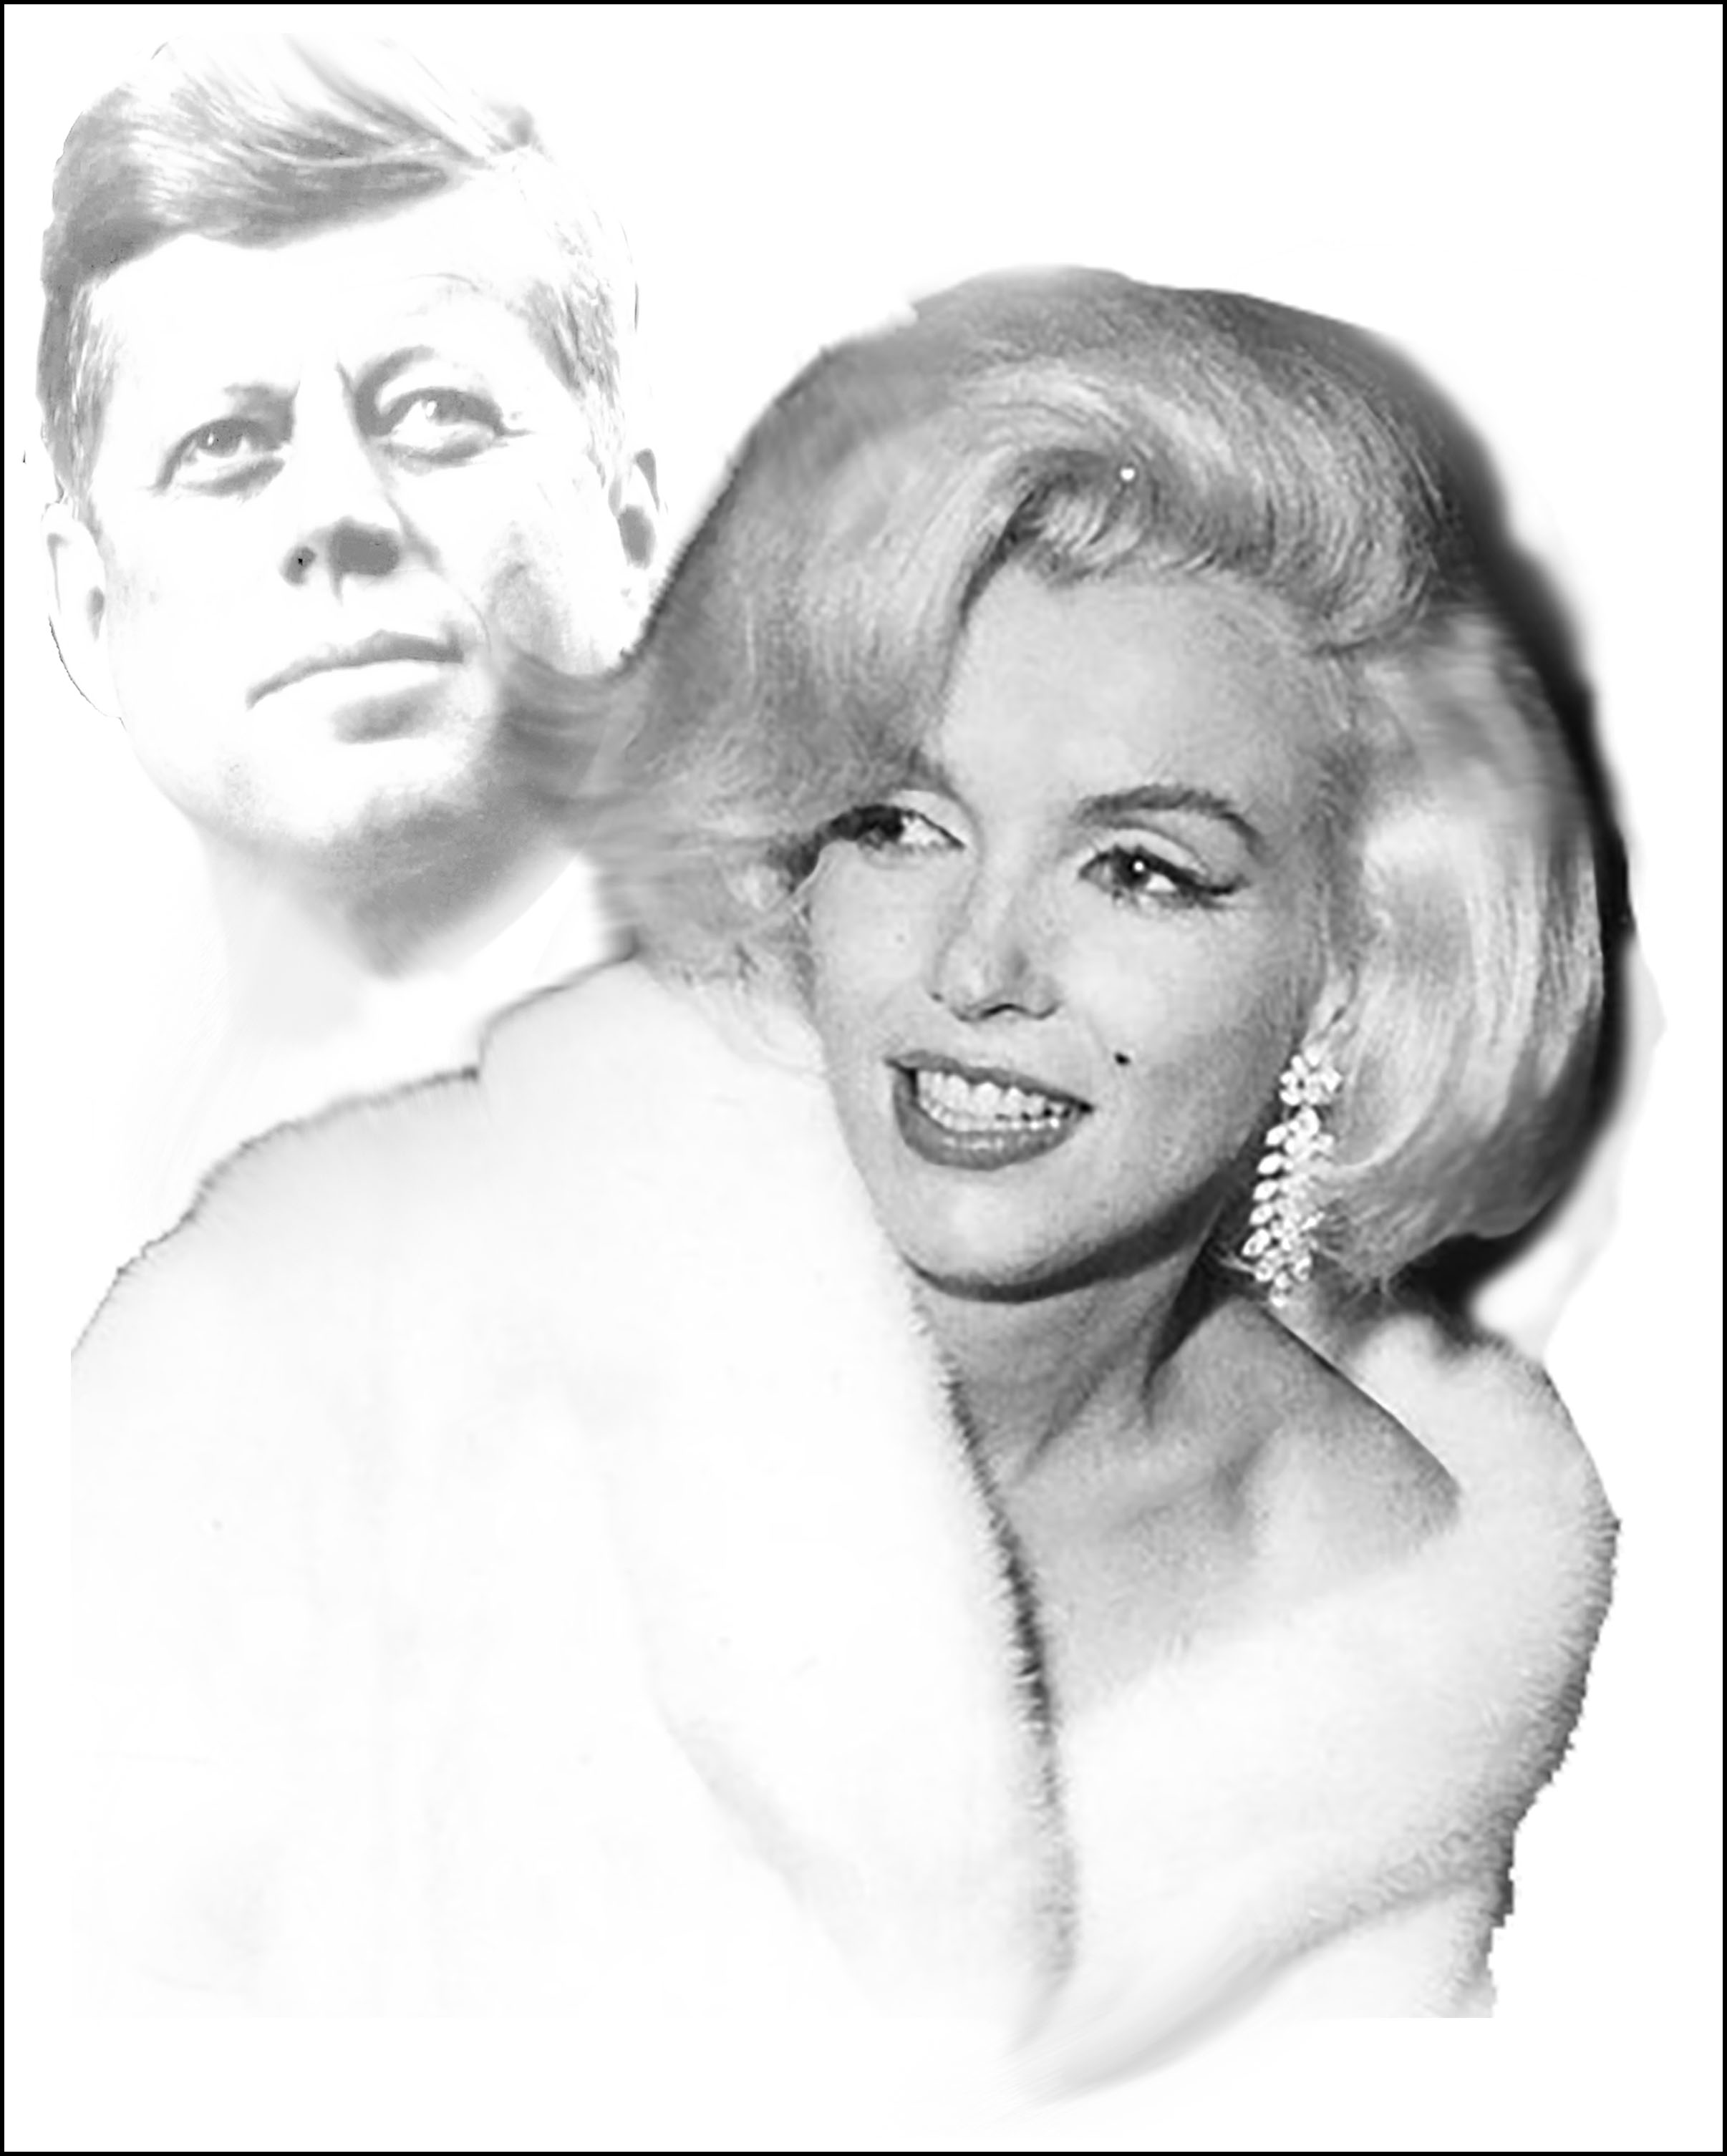 Marilyn and JFK Available as Commission- Size TBD